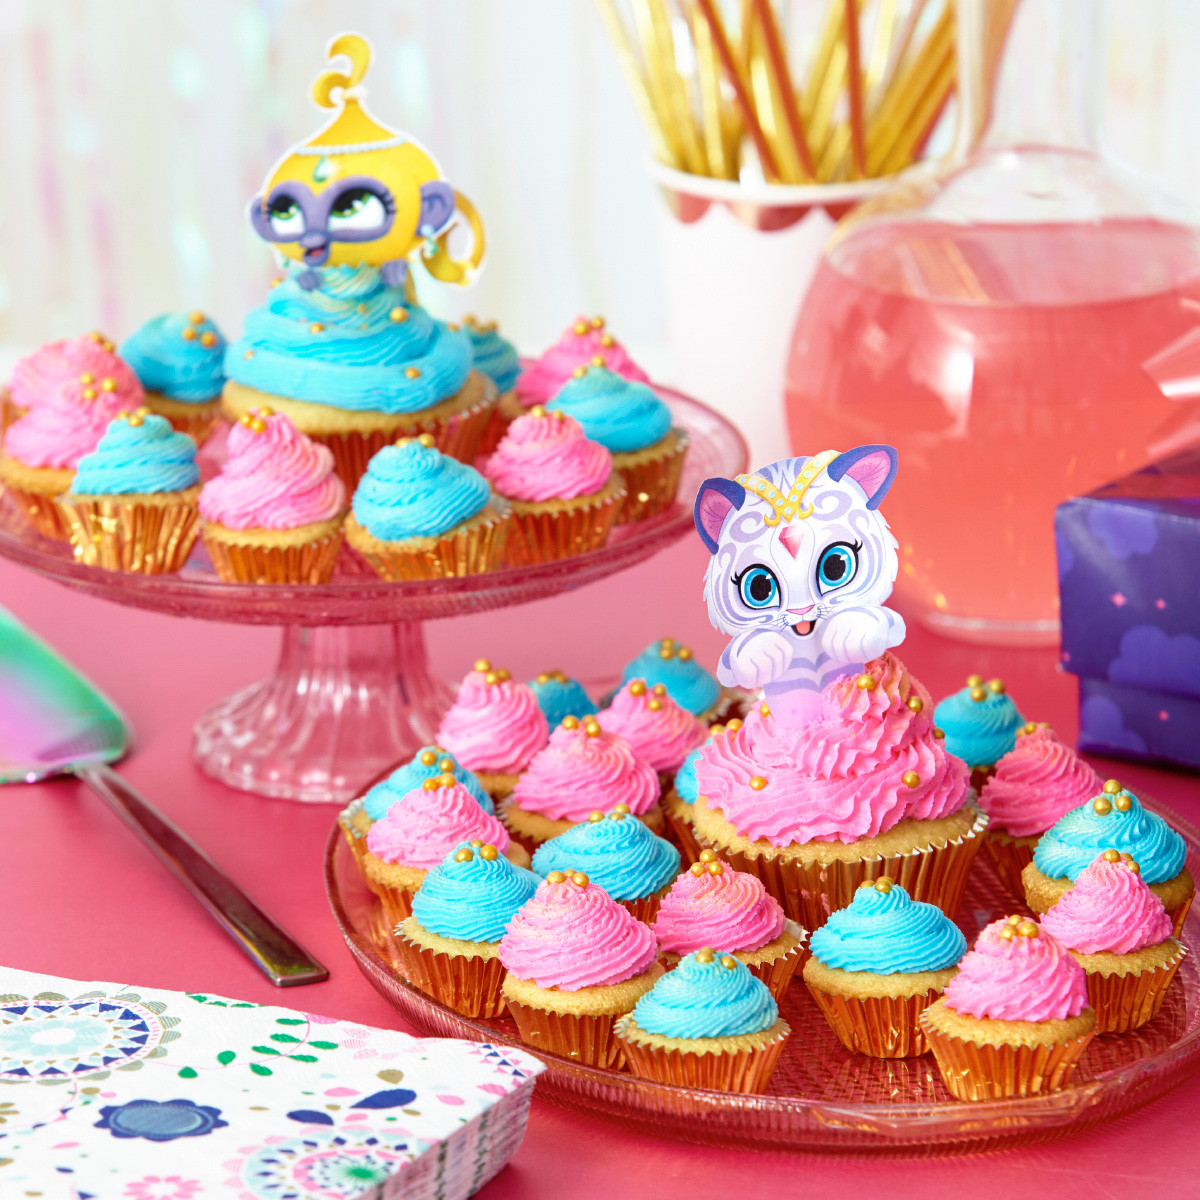 Shimmer And Shine Birthday Cake  Plan a Shimmer and Shine Birthday Party